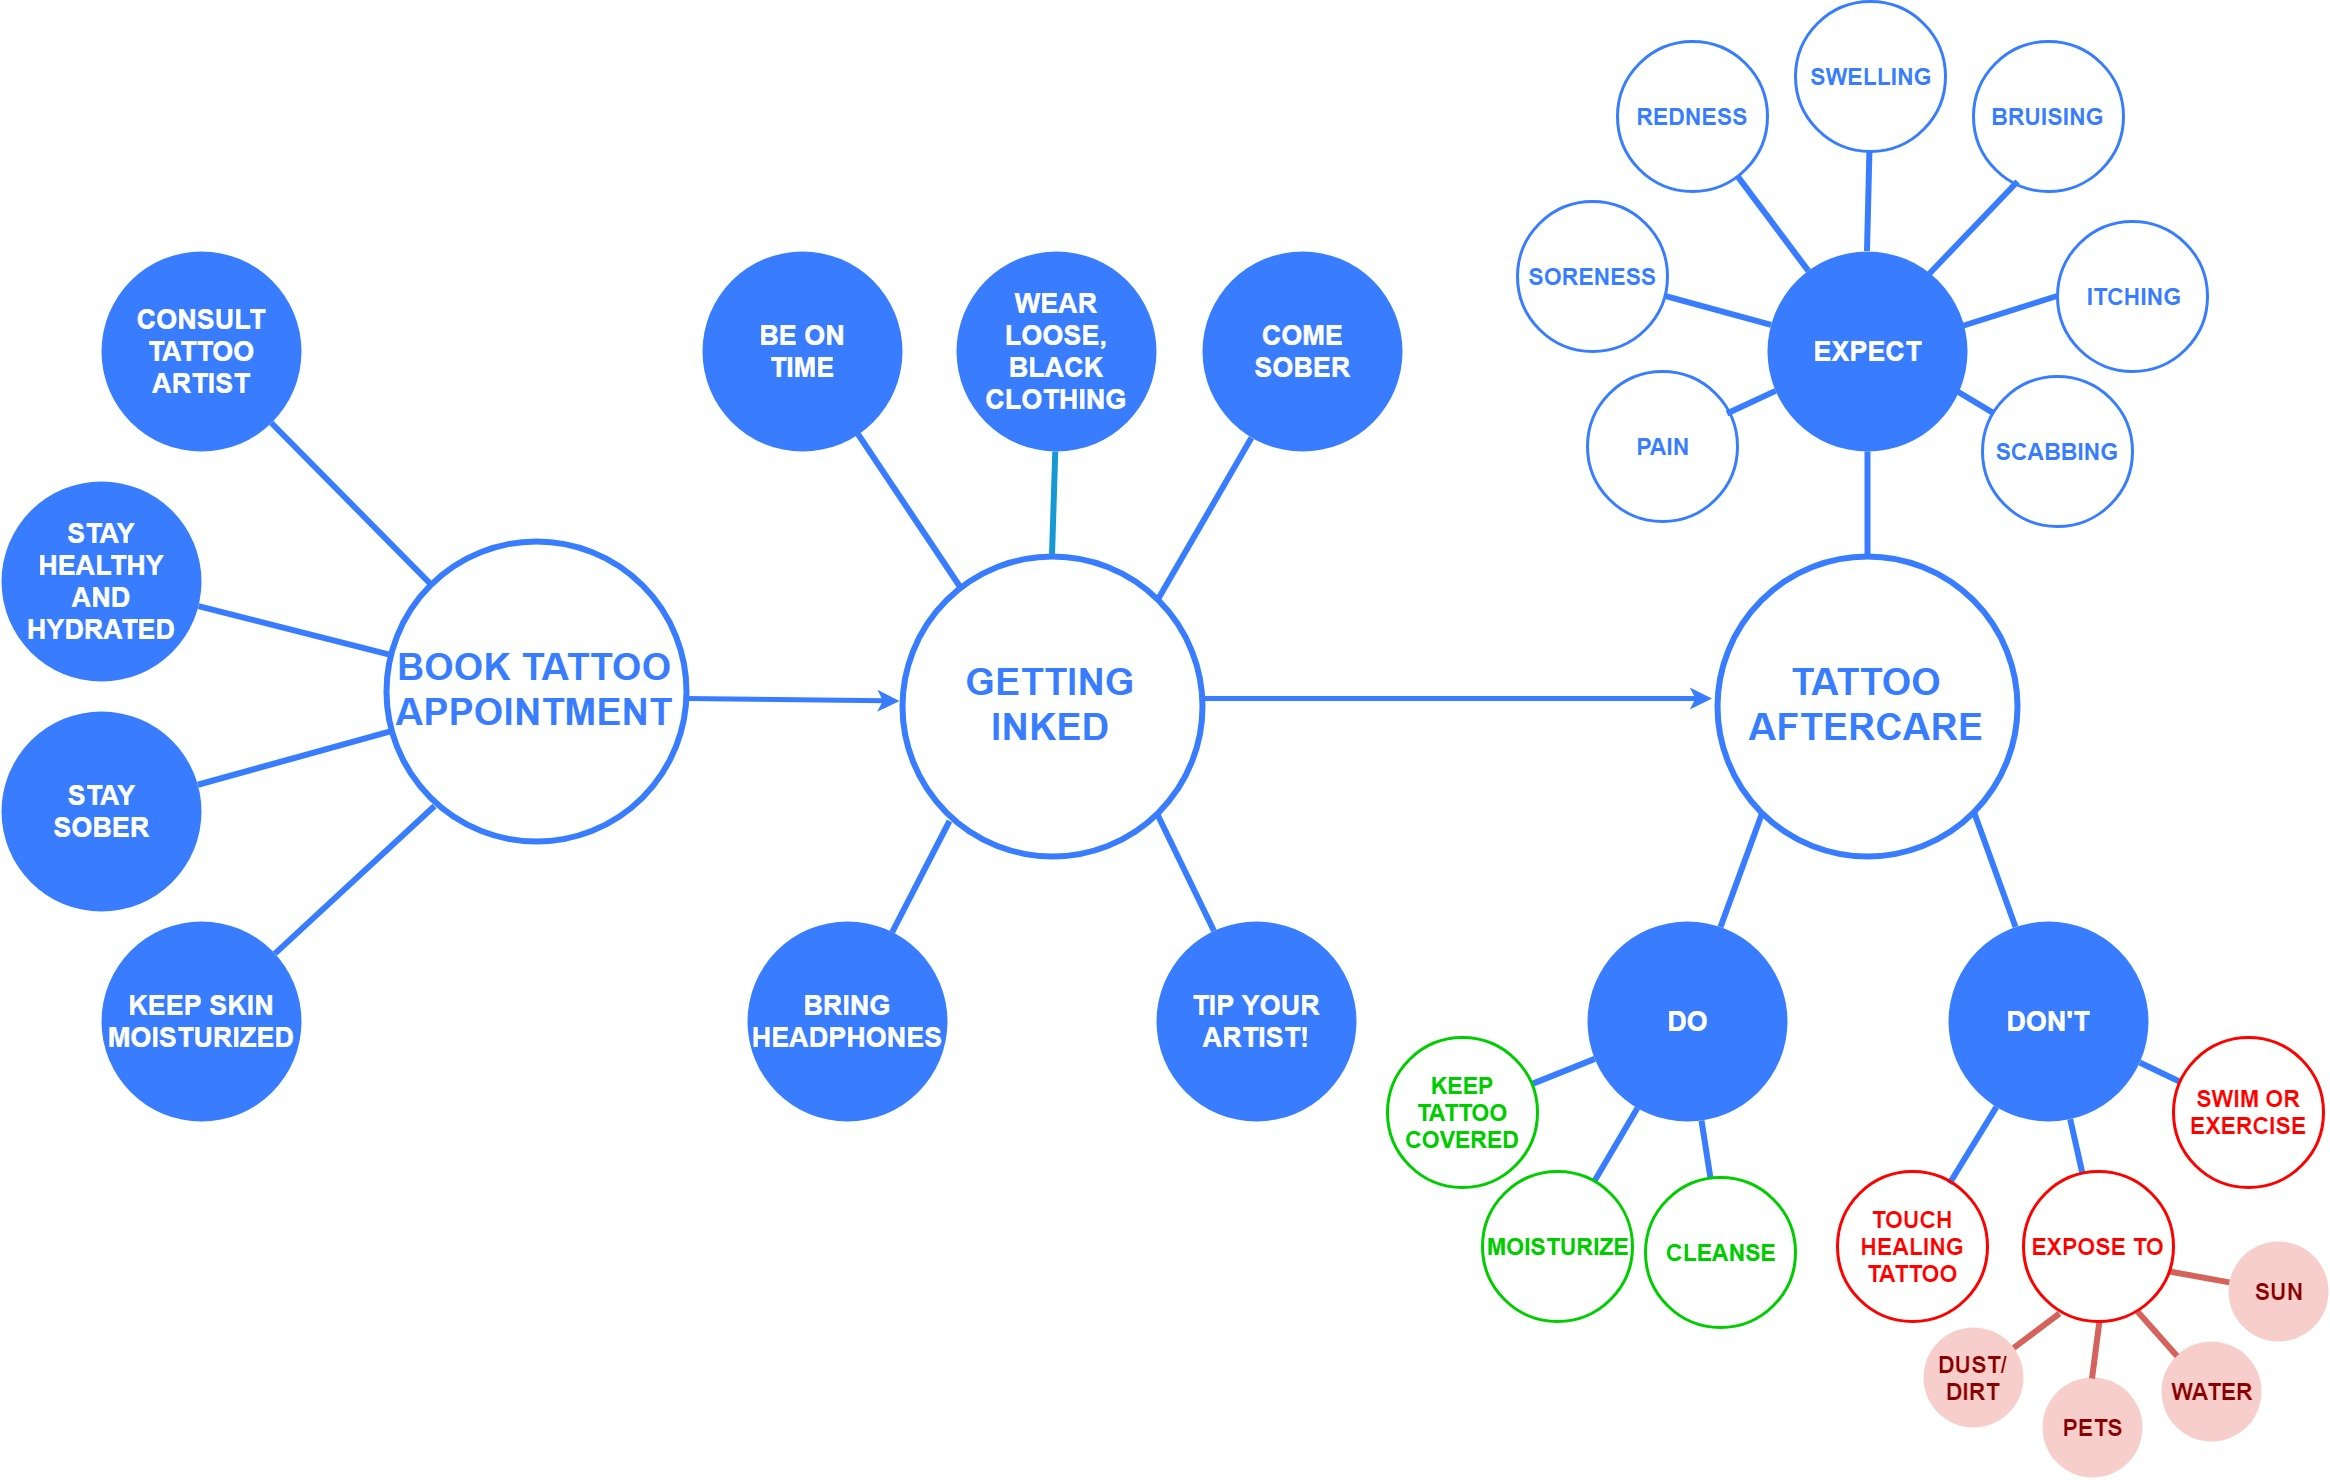 Tattoo care flowchart from booking an appointment, to getting inked, to tattoo aftercare